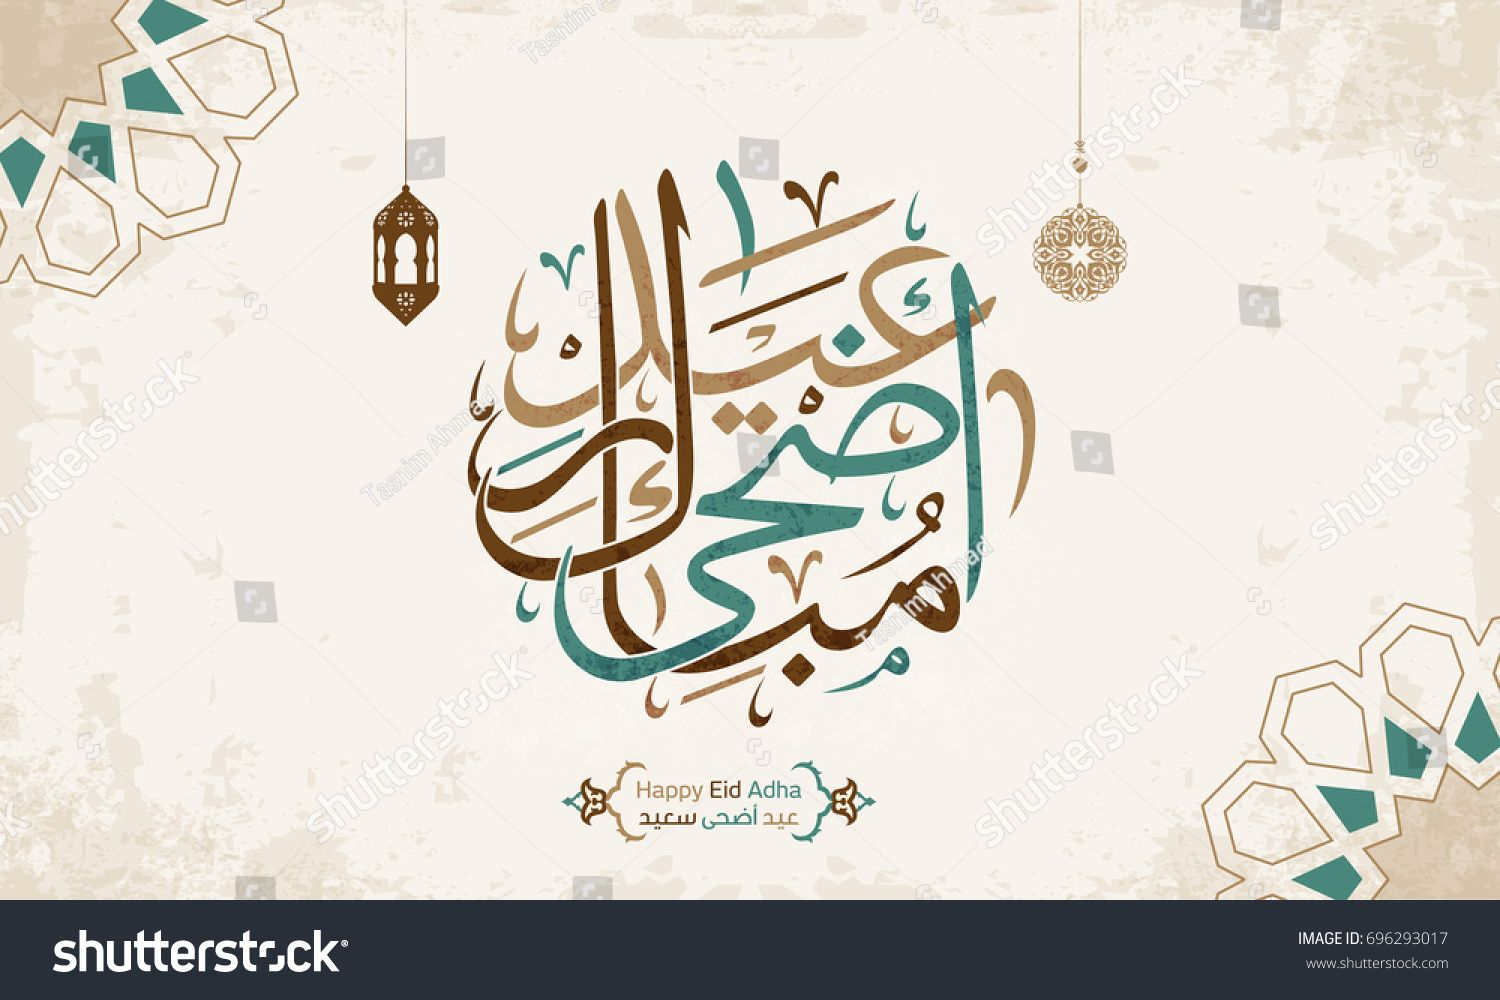 Vector Of Arabic Calligraphy Text Of Eid Al Adha Mubarak For The Celebration Of Muslim Community Ce Calligraphy Text Islamic Art Calligraphy Calligraphy Styles